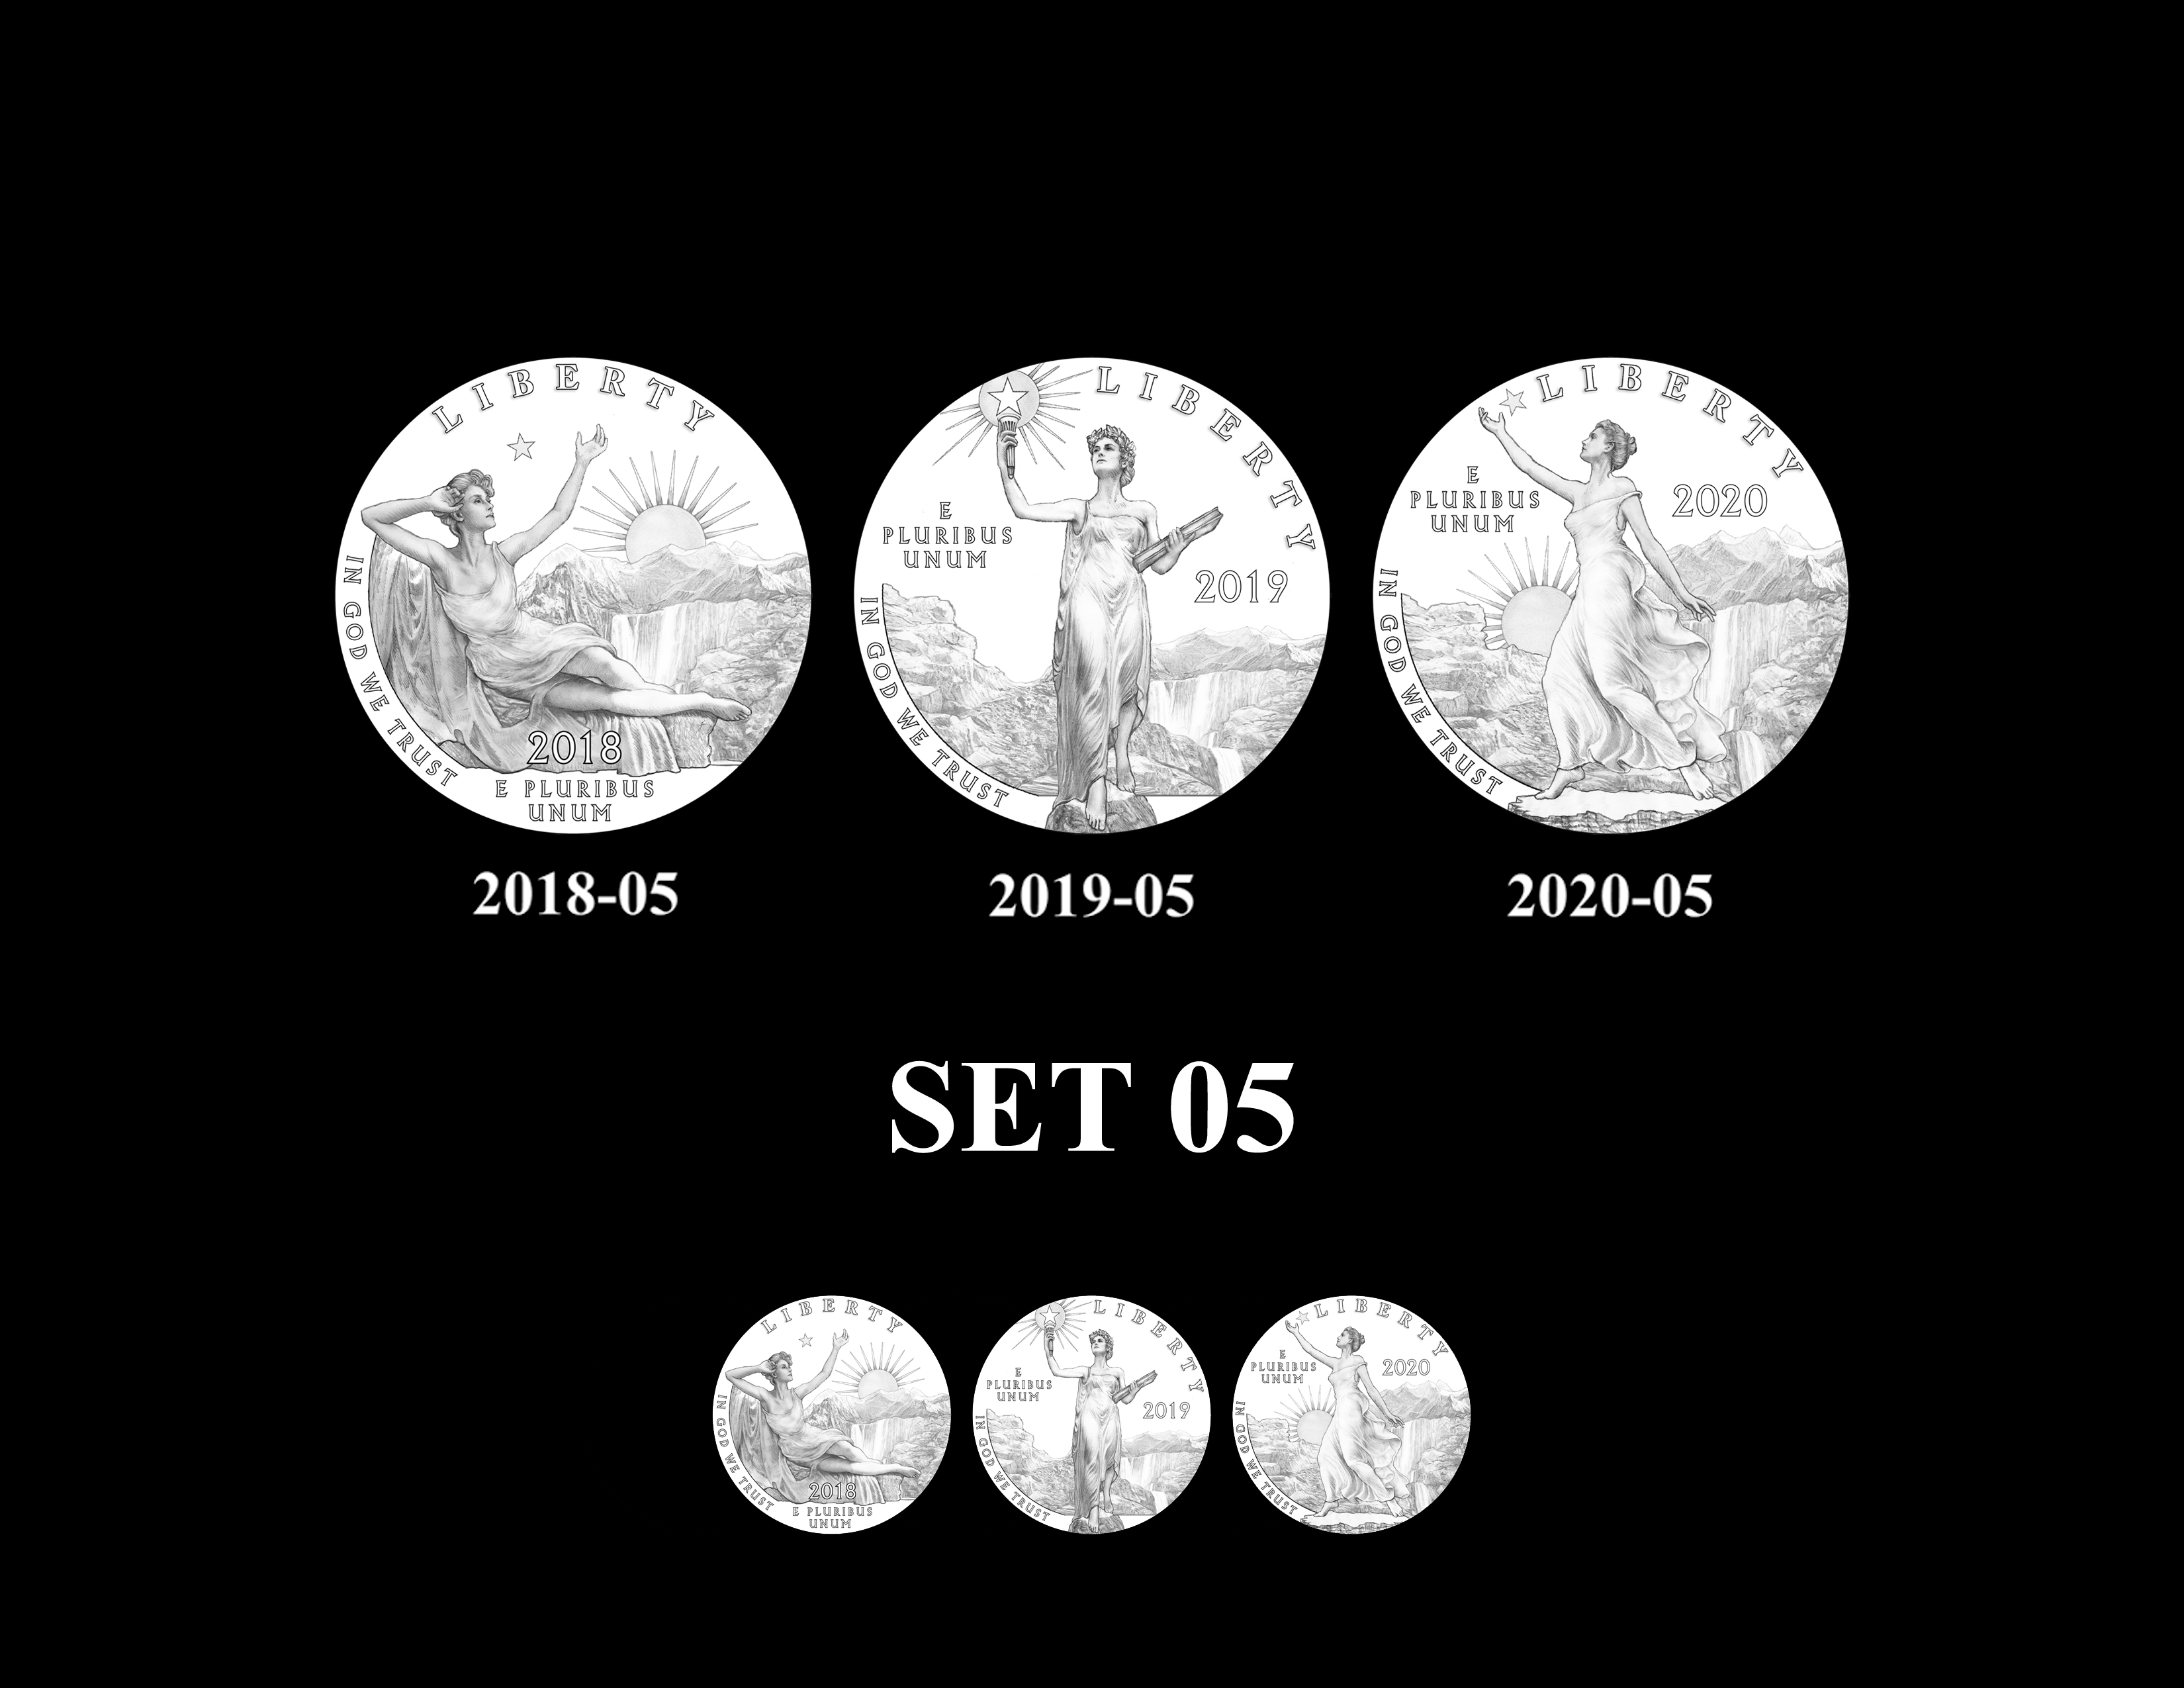 SET 05 - 2018 2019 and 2020 American Eagle Platinum Proof Program